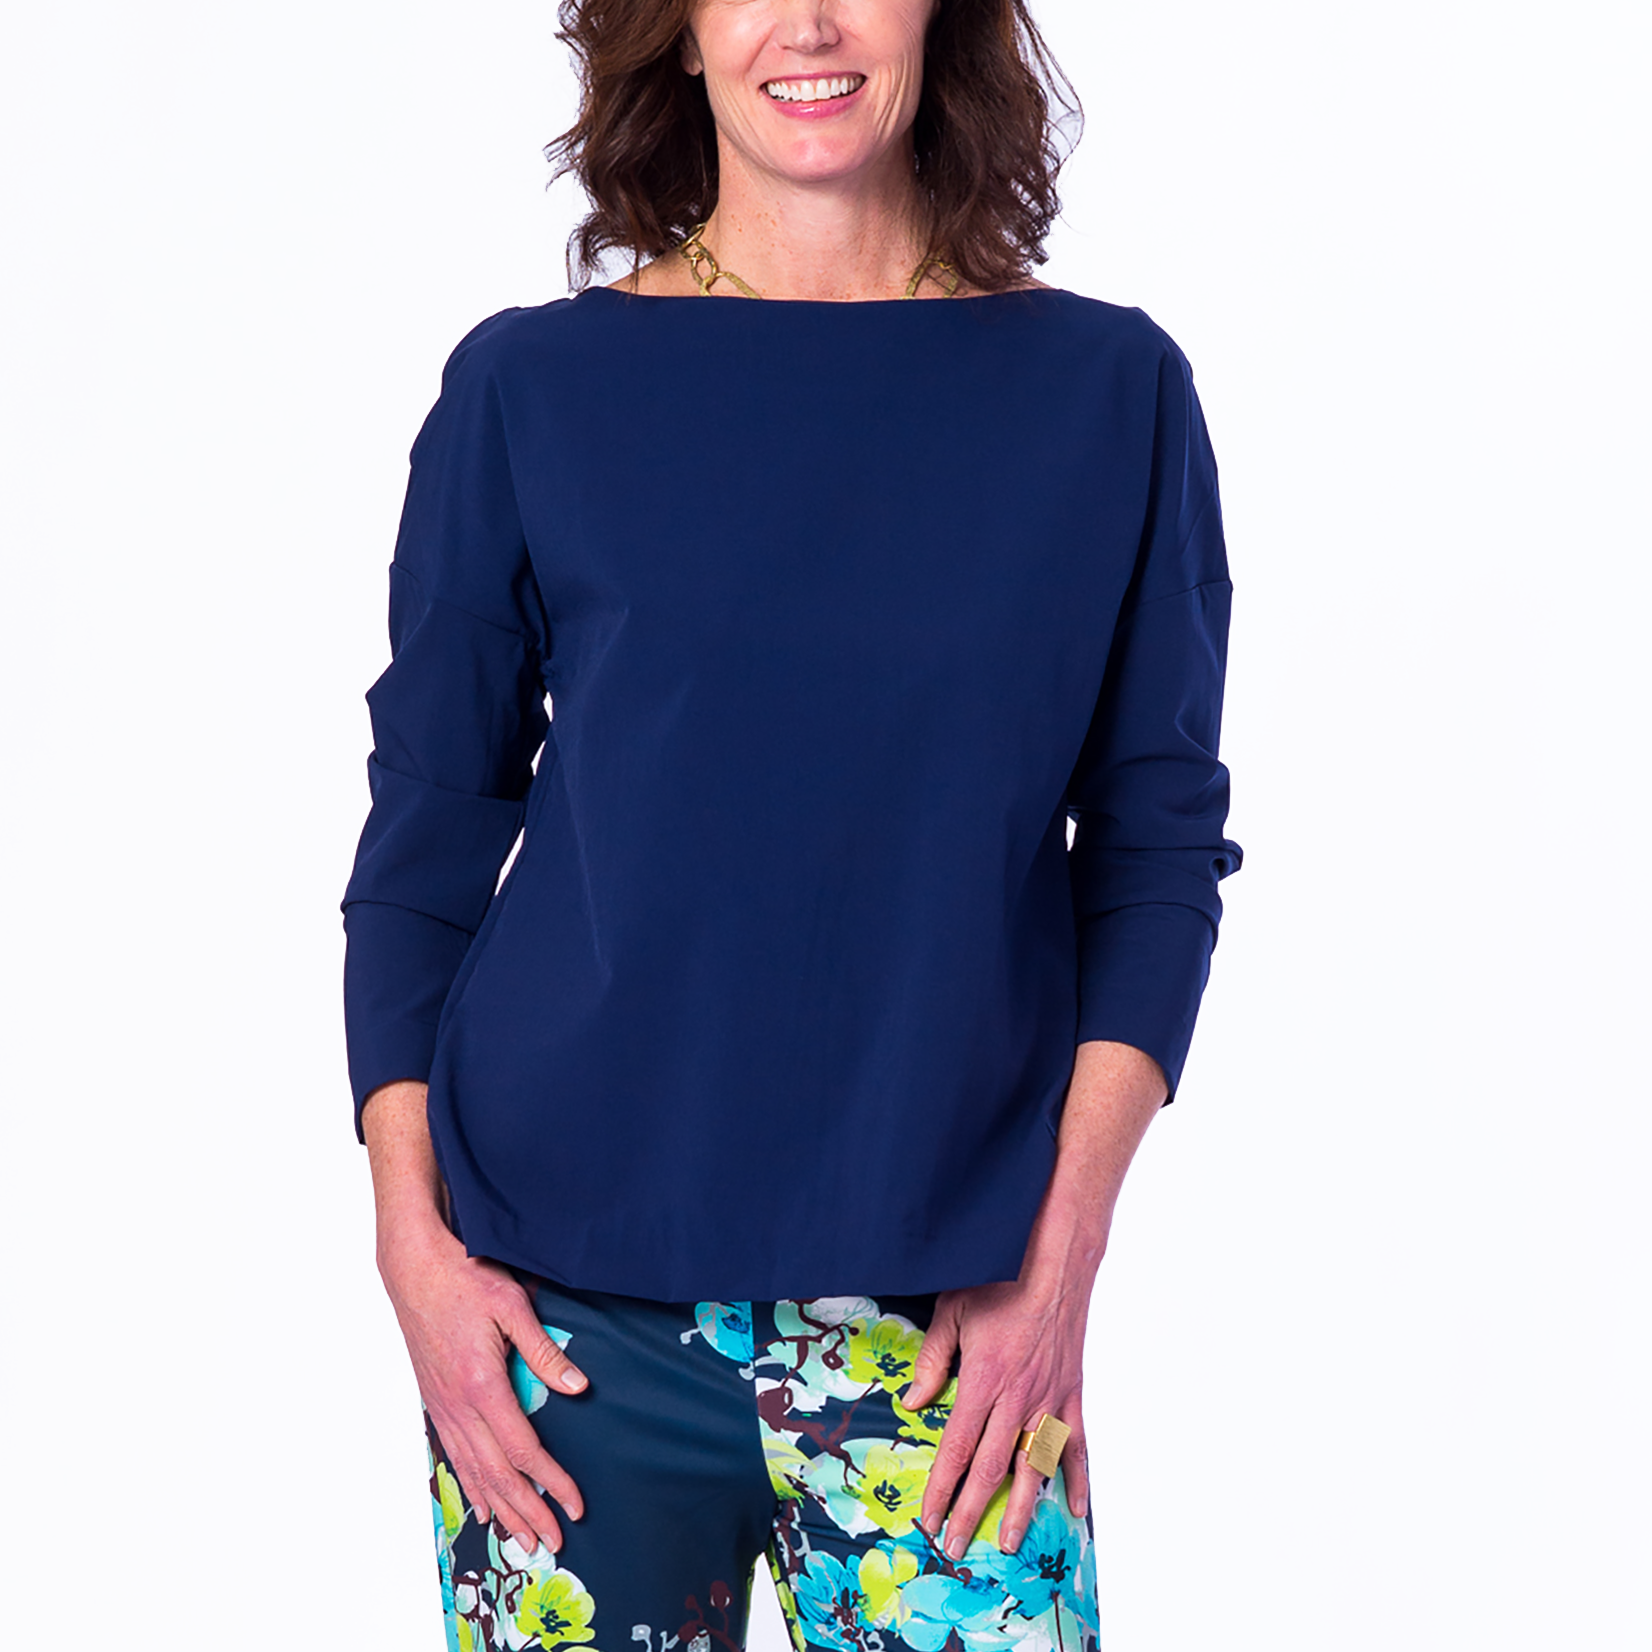 Suzanne Boat Neck Blouse in Solid Navy - Elizabeth Ackerman New York